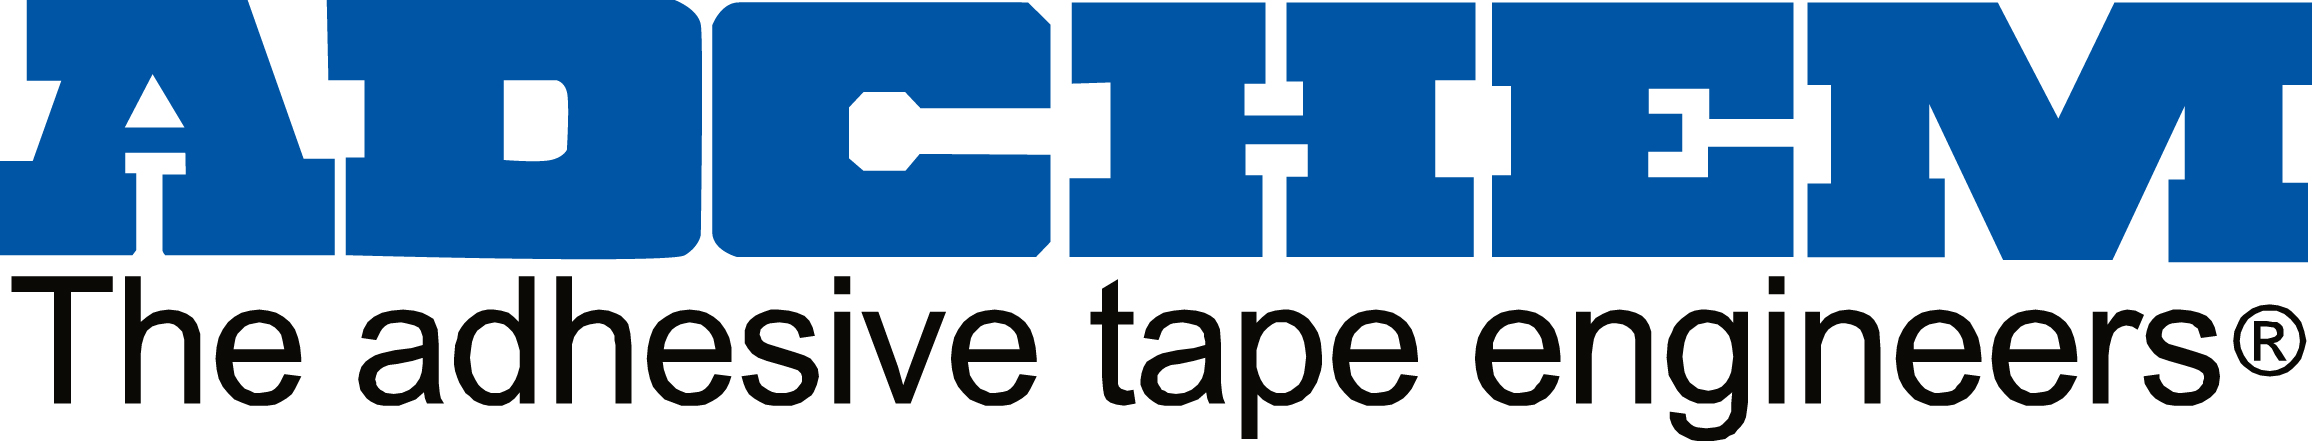 Adchem The Adhesive Tape Engineers Trademark